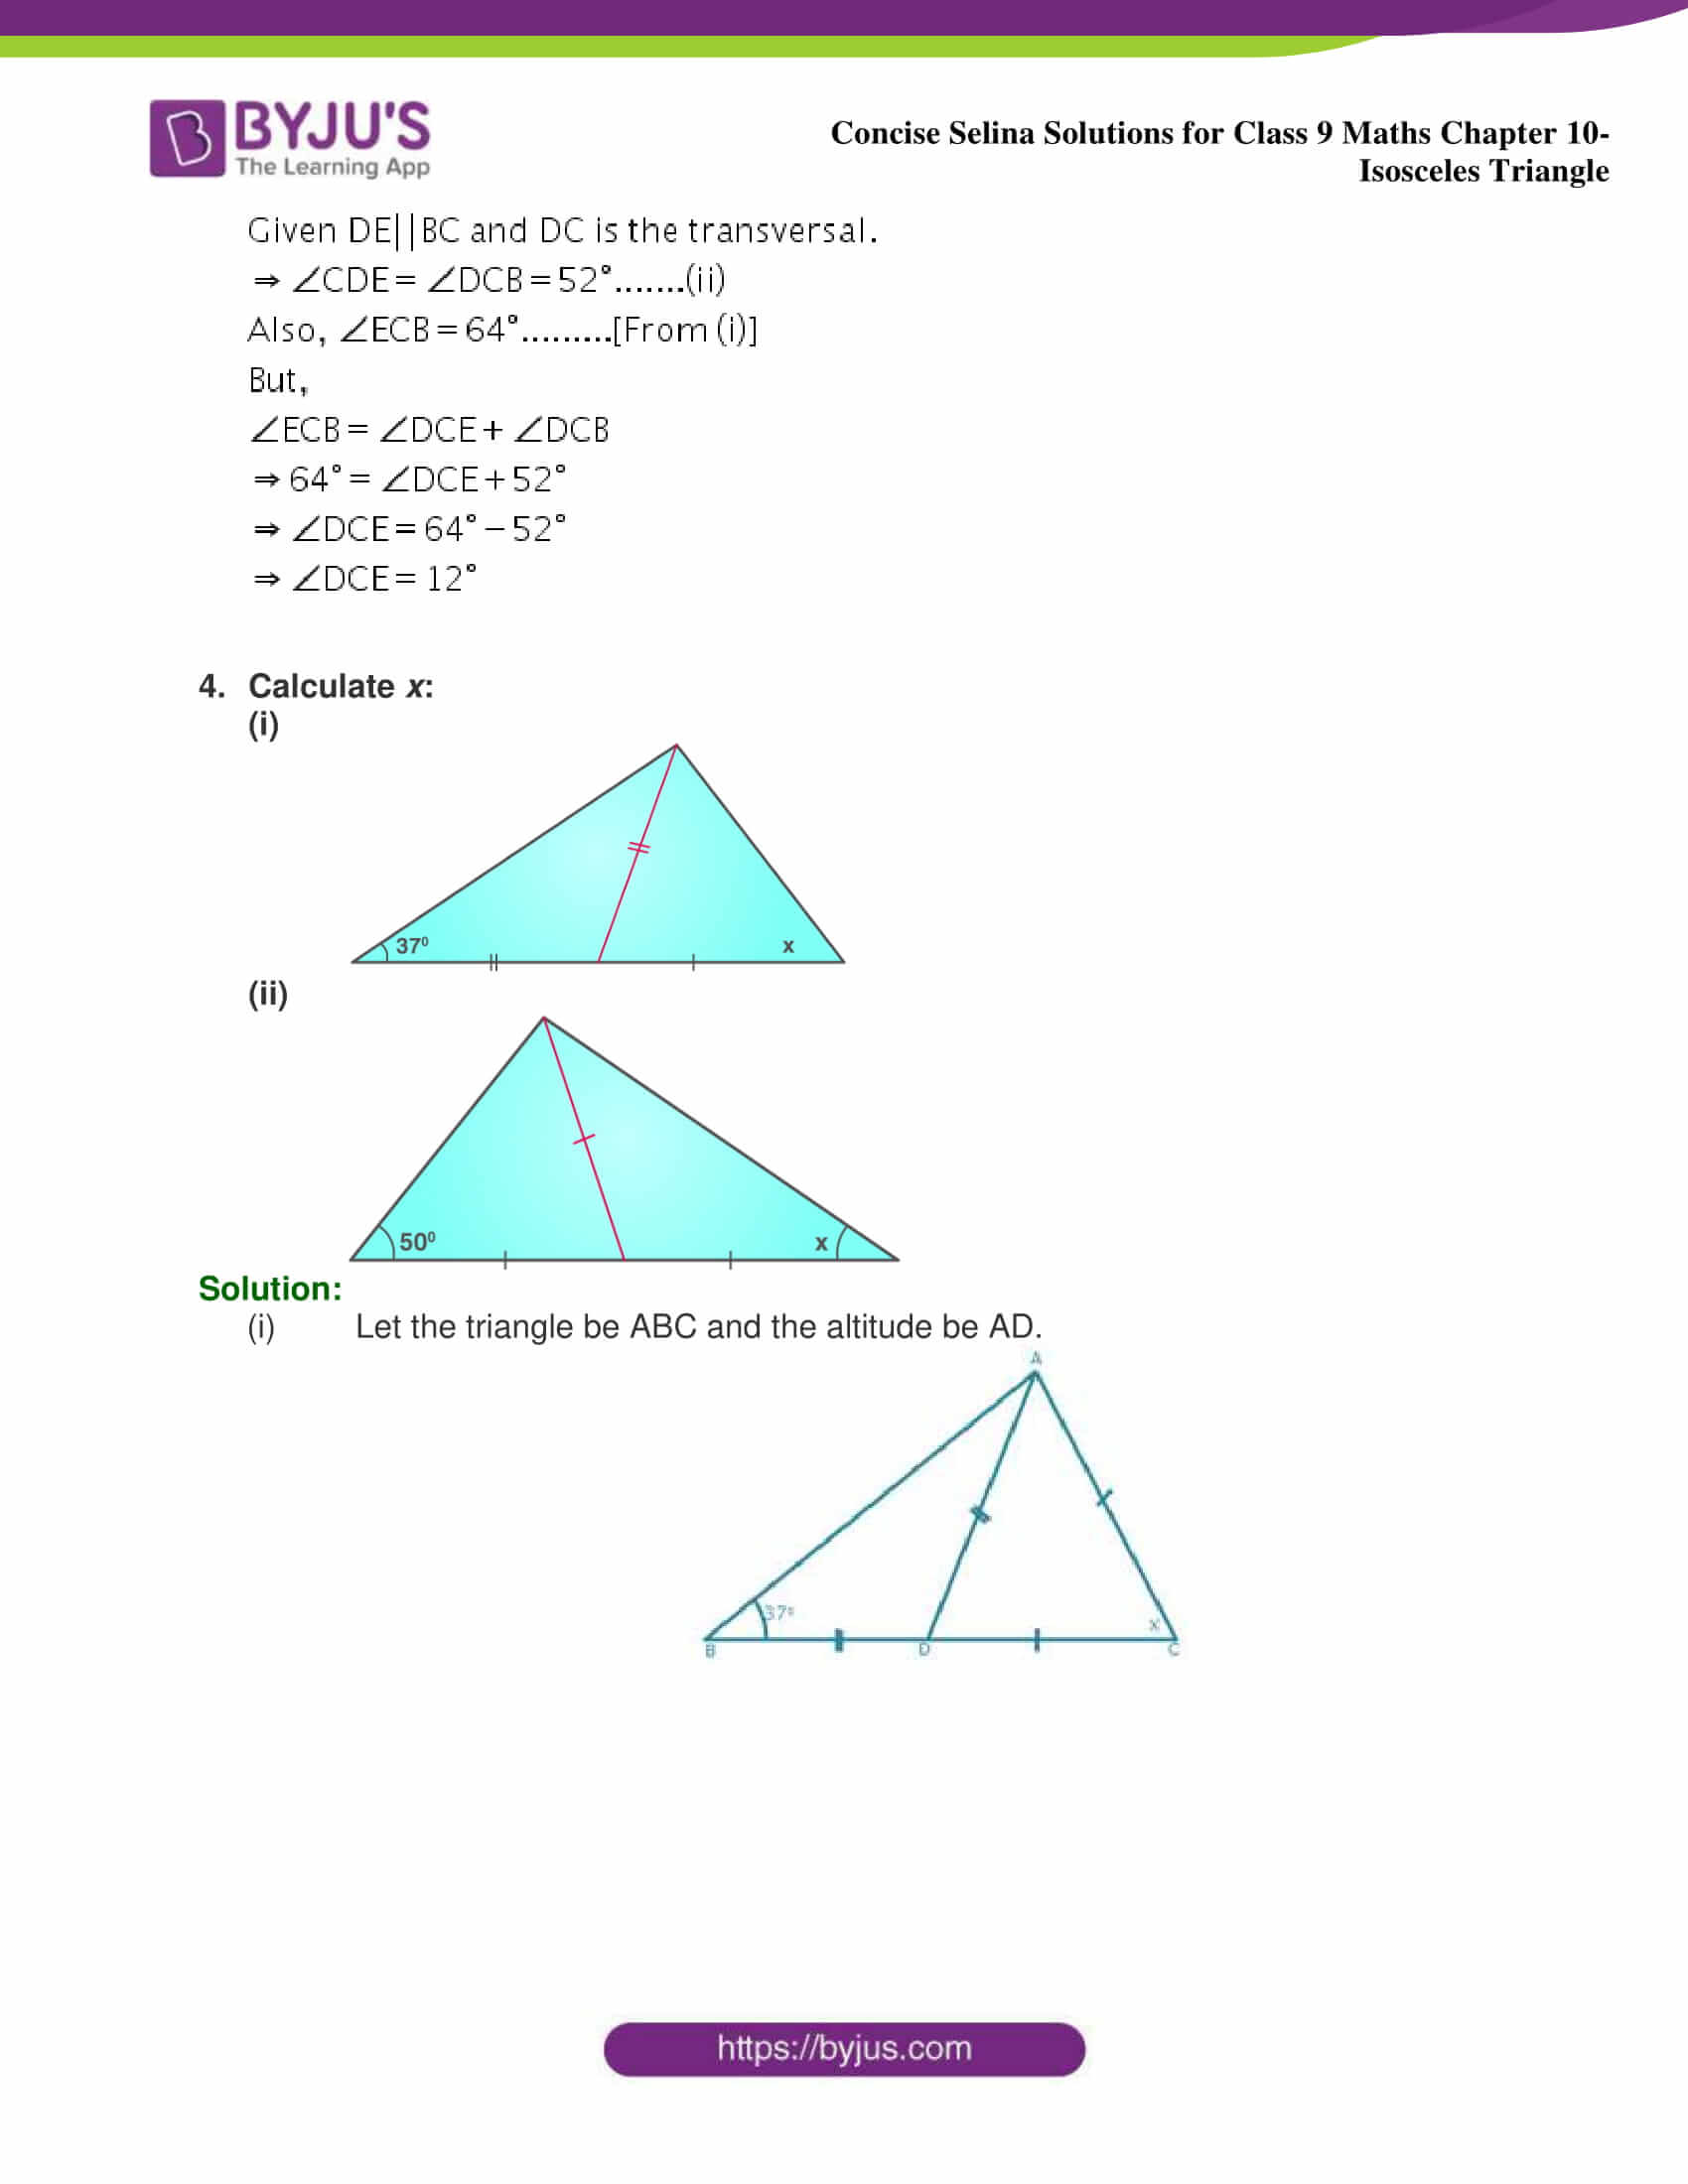 selina Solutions for Class 9 Maths Chapter 10 part 04